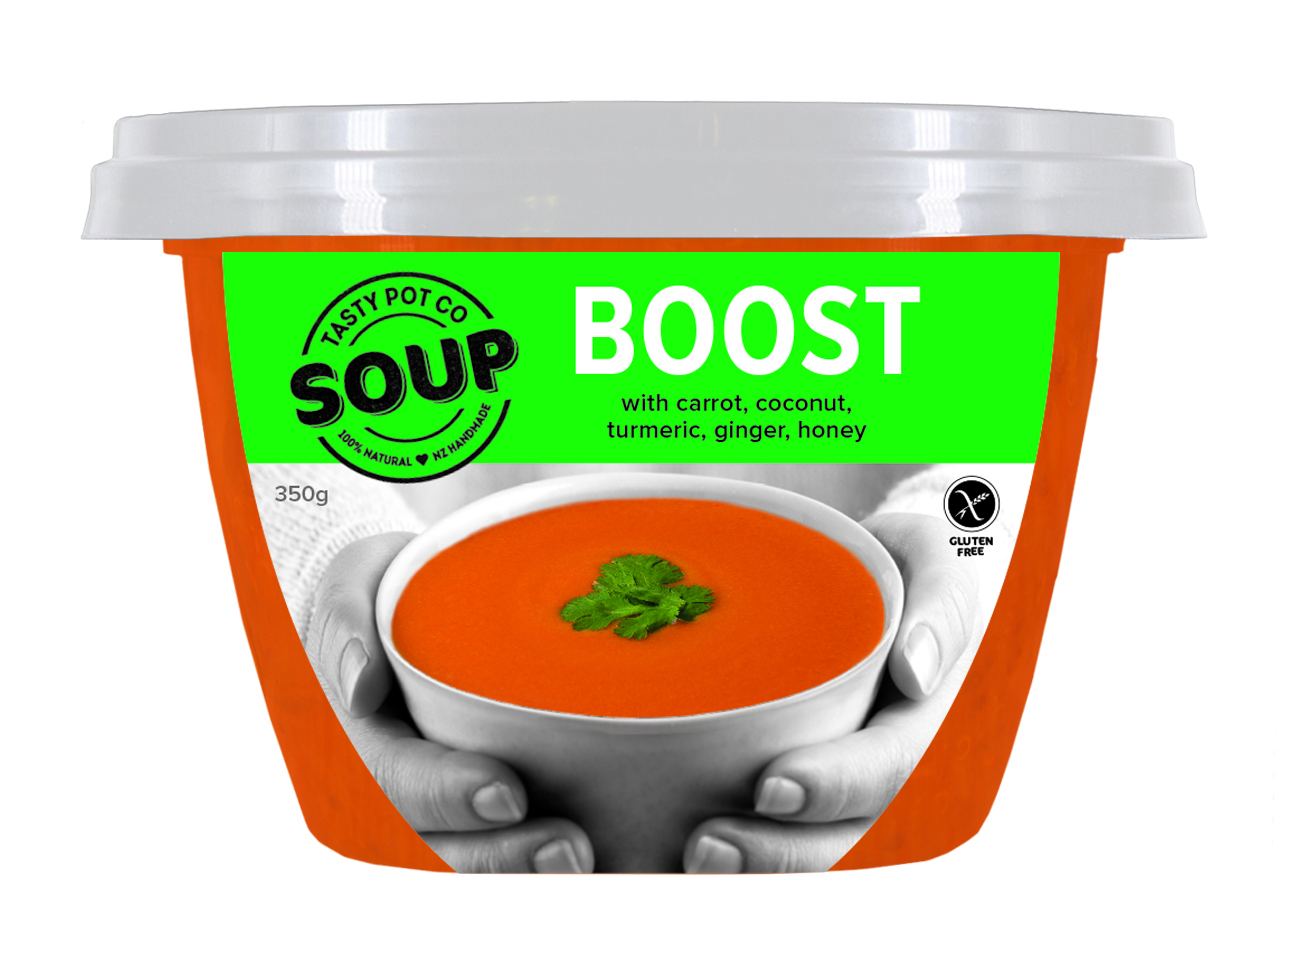 BOOST SOUP